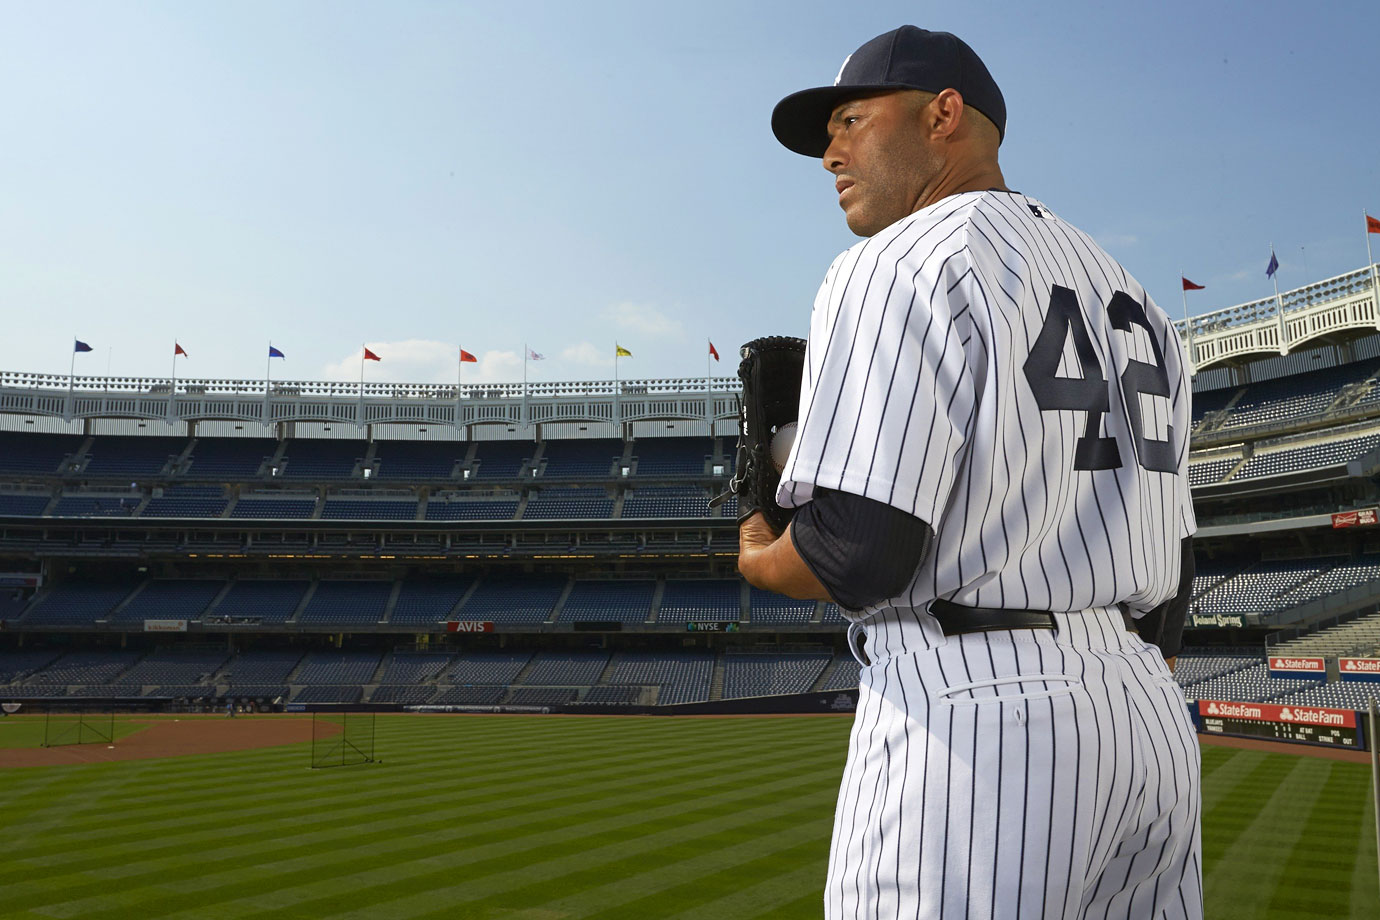 "Rivera, the greatest closer in baseball history, dominated and intimidated hitters with his cut fastball and ""Enter Sandman"" entrance music since breaking in with the Yankees in 1995. In 19 years, all with the Yankees, Rivera racked up an MLB-record 652 saves and appeared in 13 All-Star games. Before his 2012 season was cut short by a torn ACL, he had recorded 30 or more saves in nine straight seasons. Rivera also regularly shined in the postseason, when he saved 42 games, had a 0.70 ERA in 141 innings pitched and helped New York win five World Series titles. Rivera was the last major league player to wear the number 42 full-time, following its league-wide retirement in honor of Jackie Robinson in April 1997."